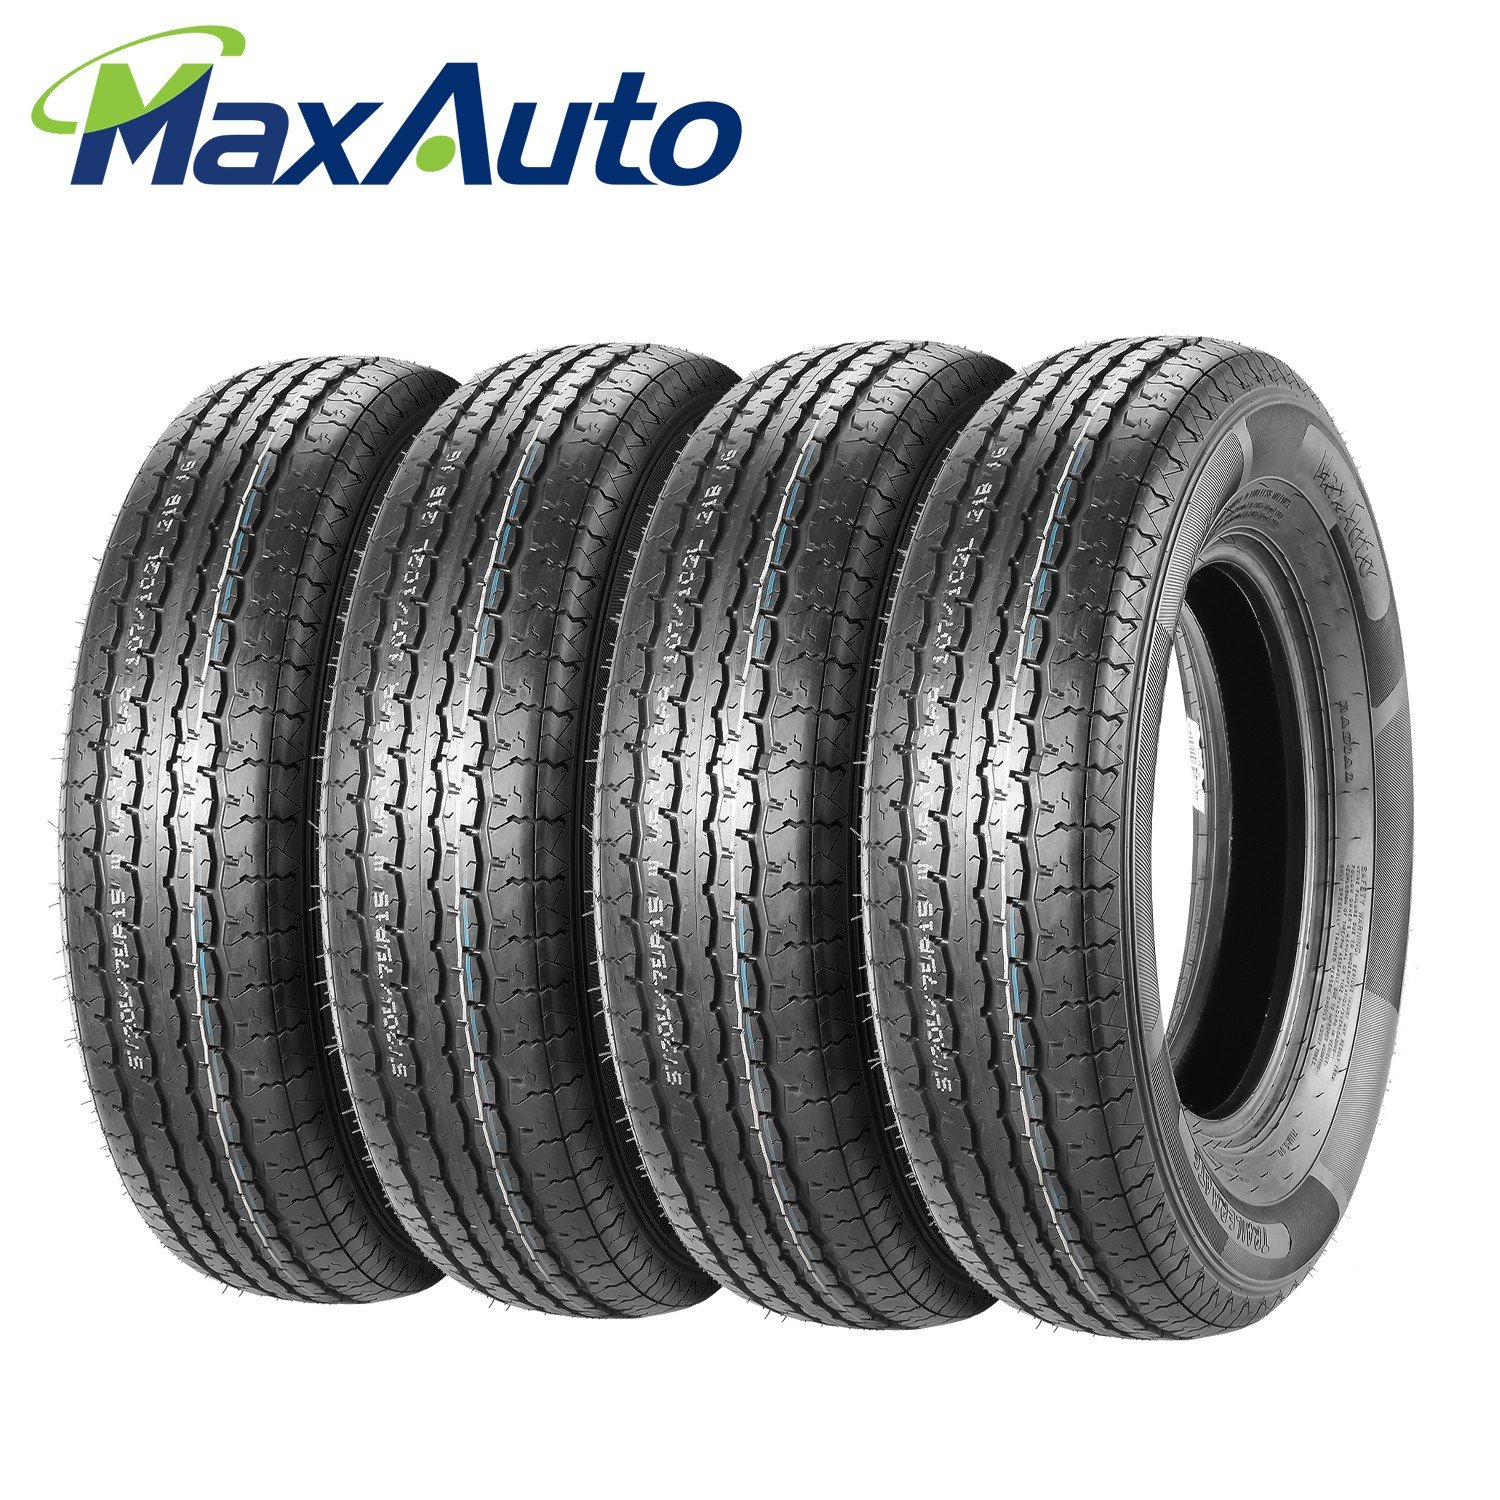 MaxAuto Radial Trailer Tires - ST205/75R15 ST205/75R-15 2057515 8Ply(Pack of 4)